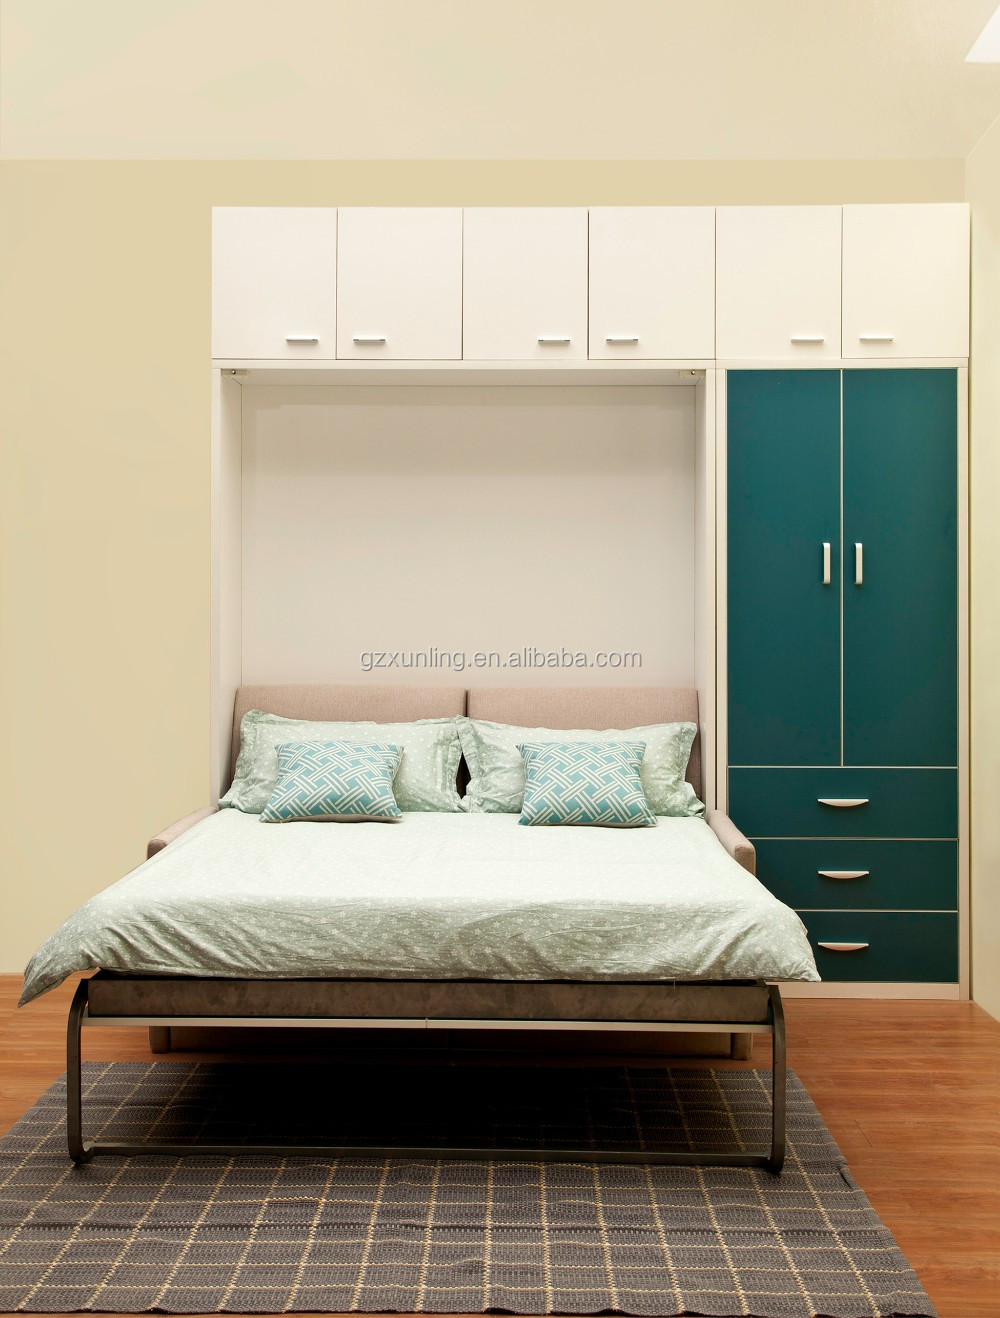 Can murphy beds be comfortable : Saving space double murphy wall bed with front sofa and